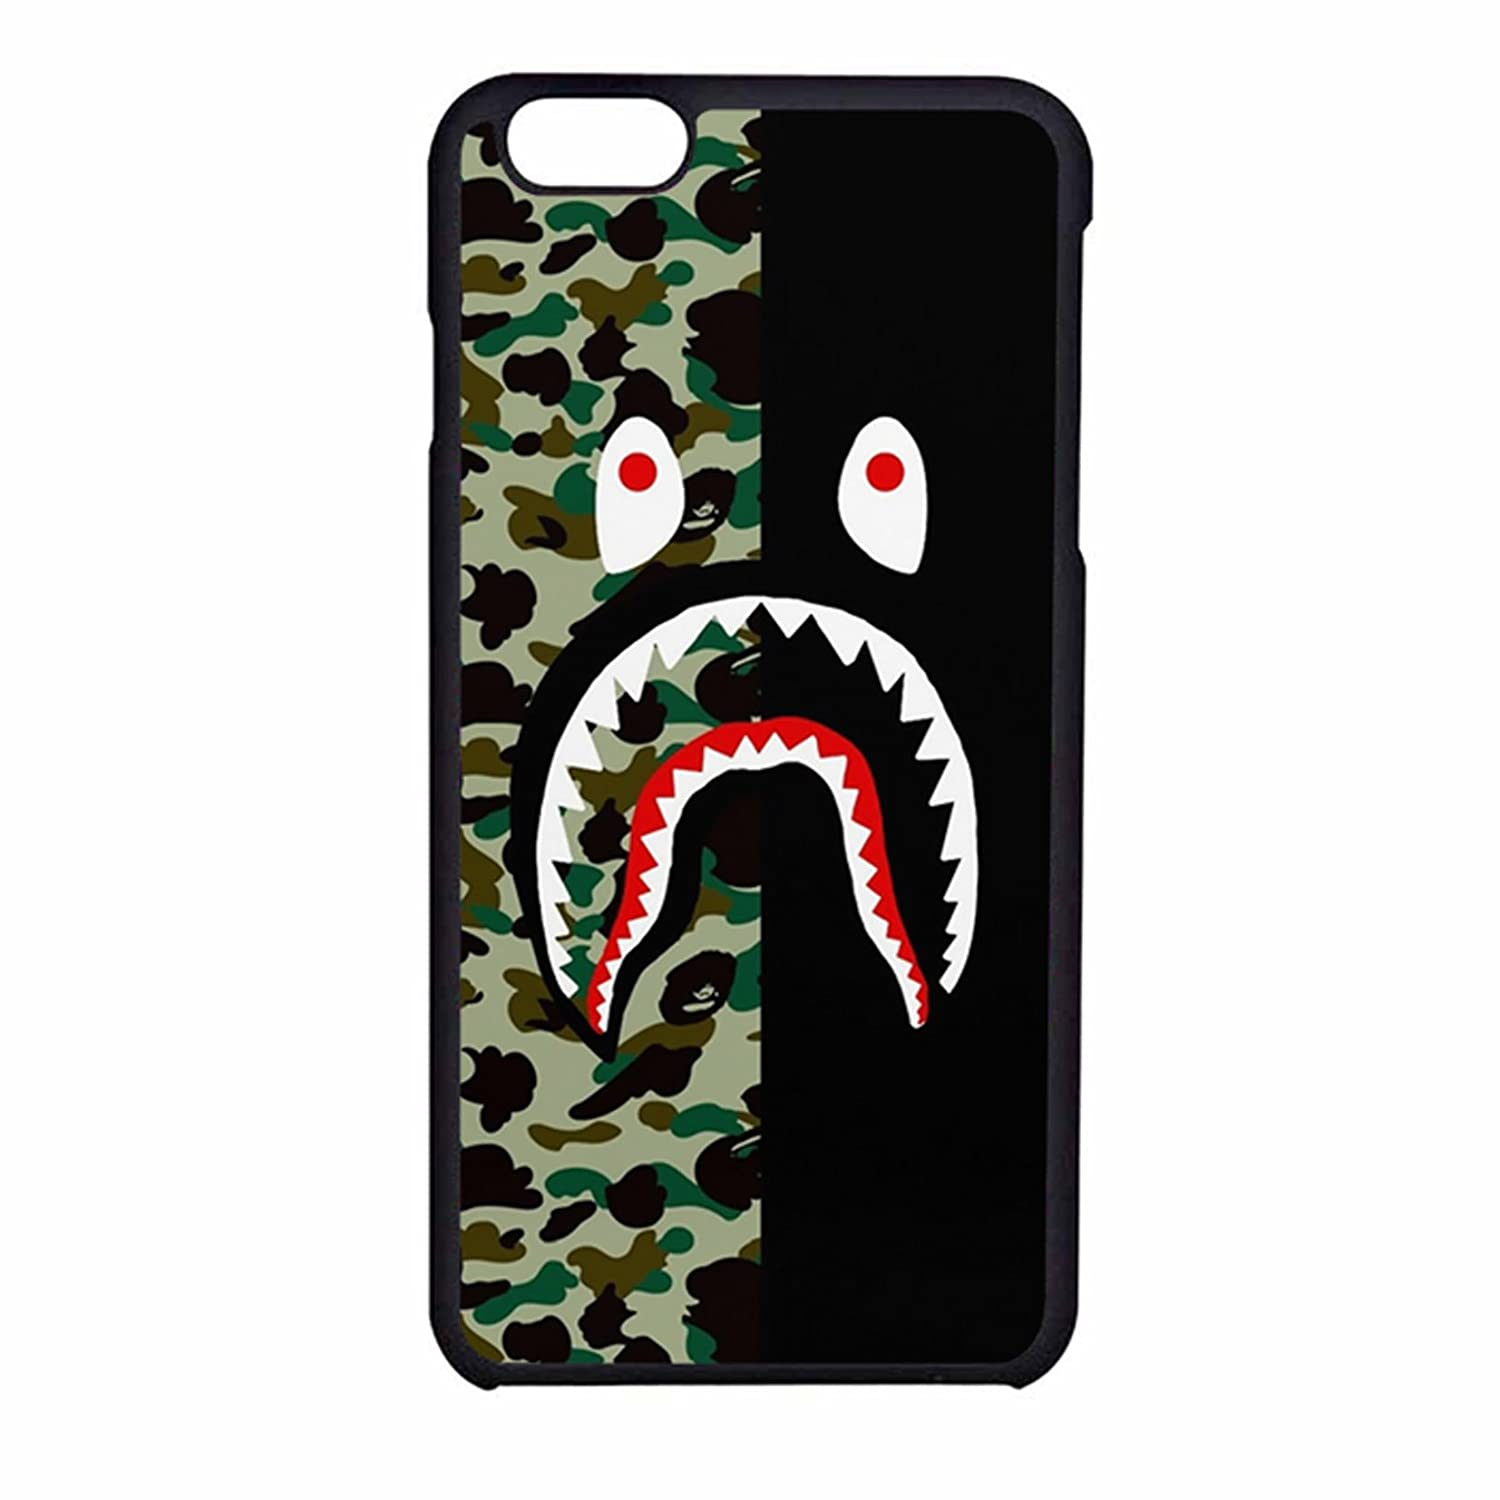 bape iphone 7 plus case